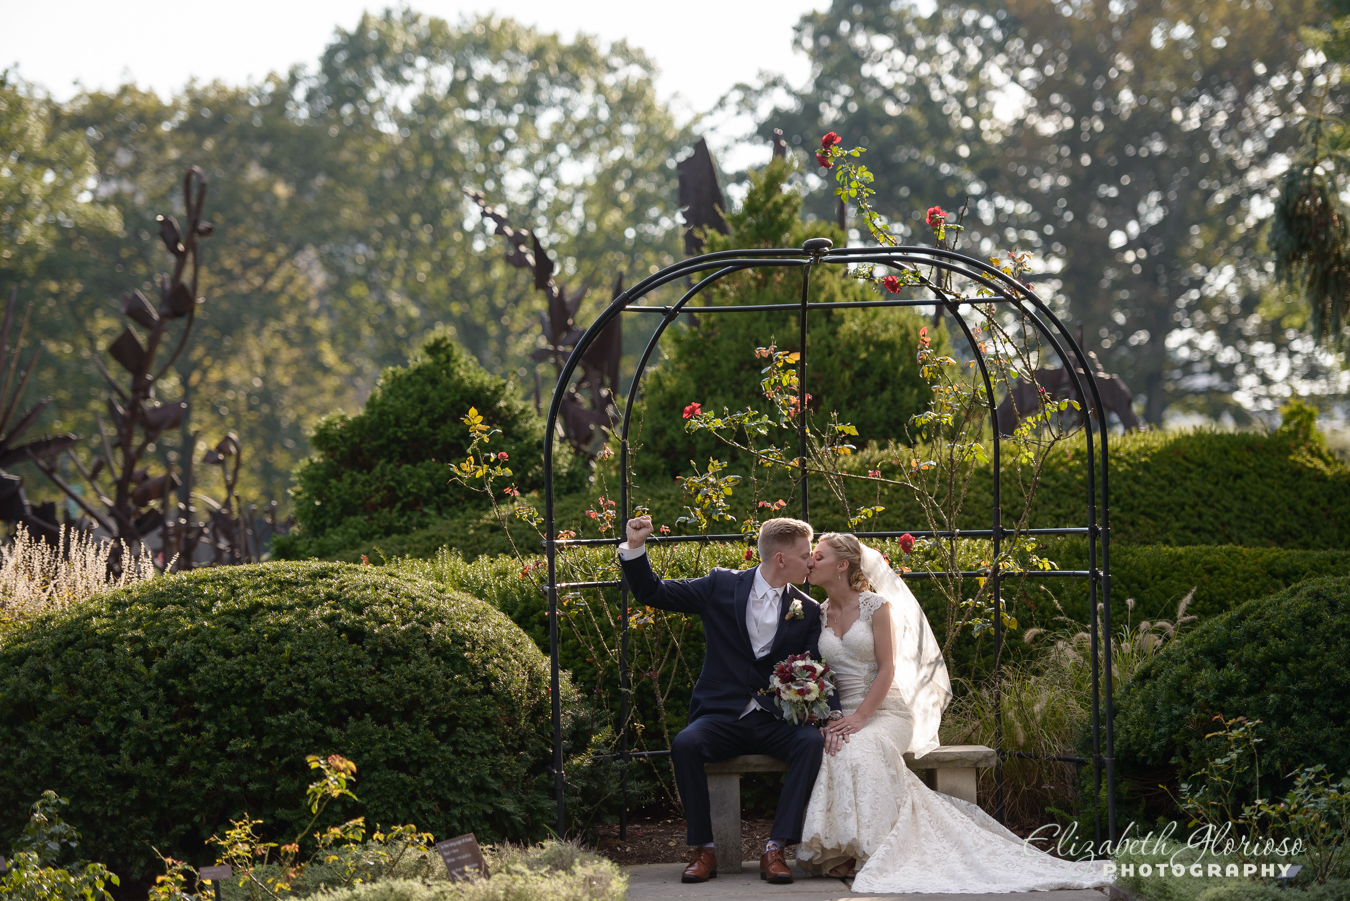 Wedding portraits at Rose garden at the Cleveland Botanical Garden